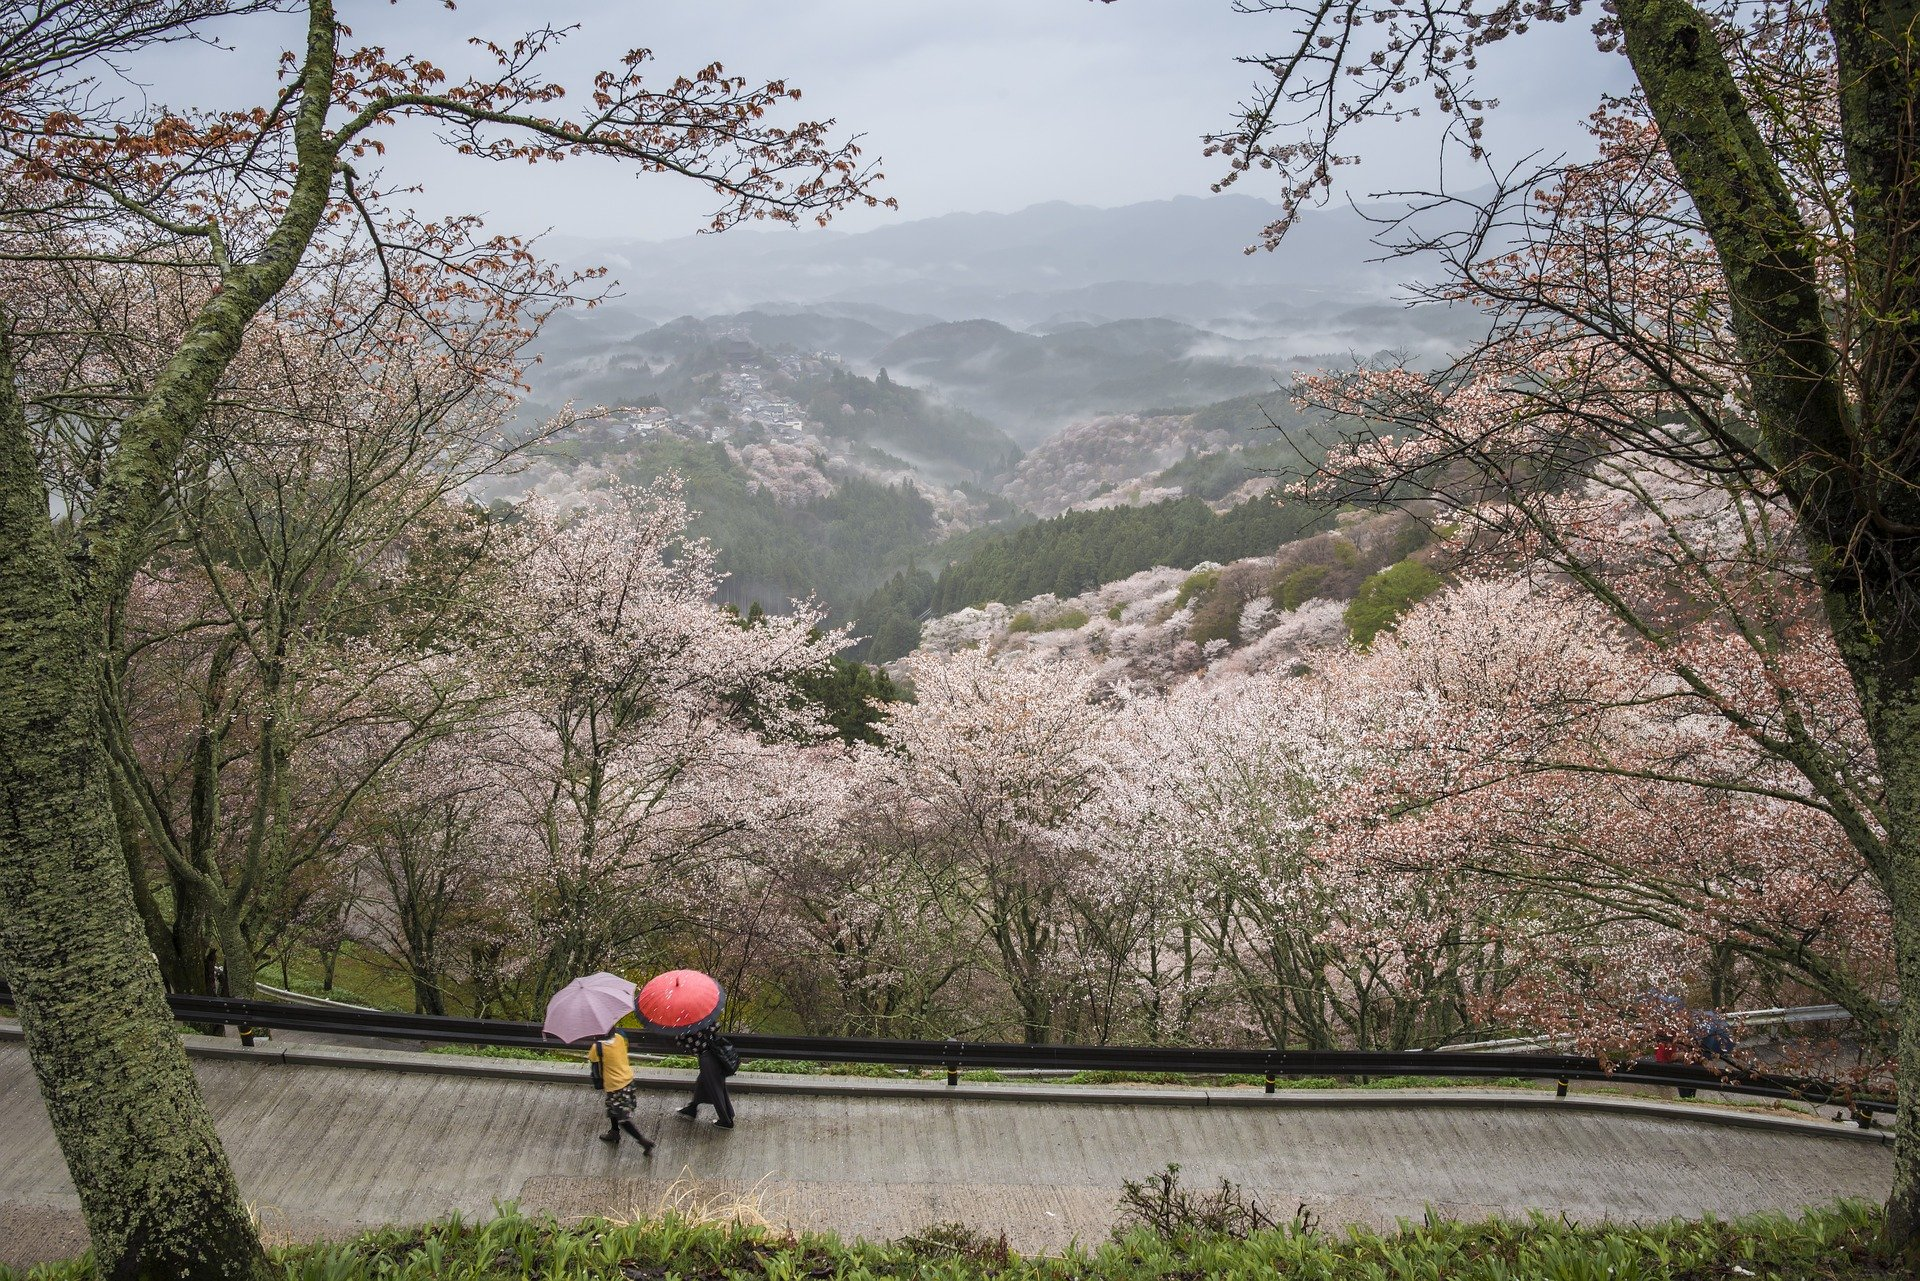 The header photo shows cherry blossoms in Japan. (Photo courtesy of Kanenori on Pixabay)